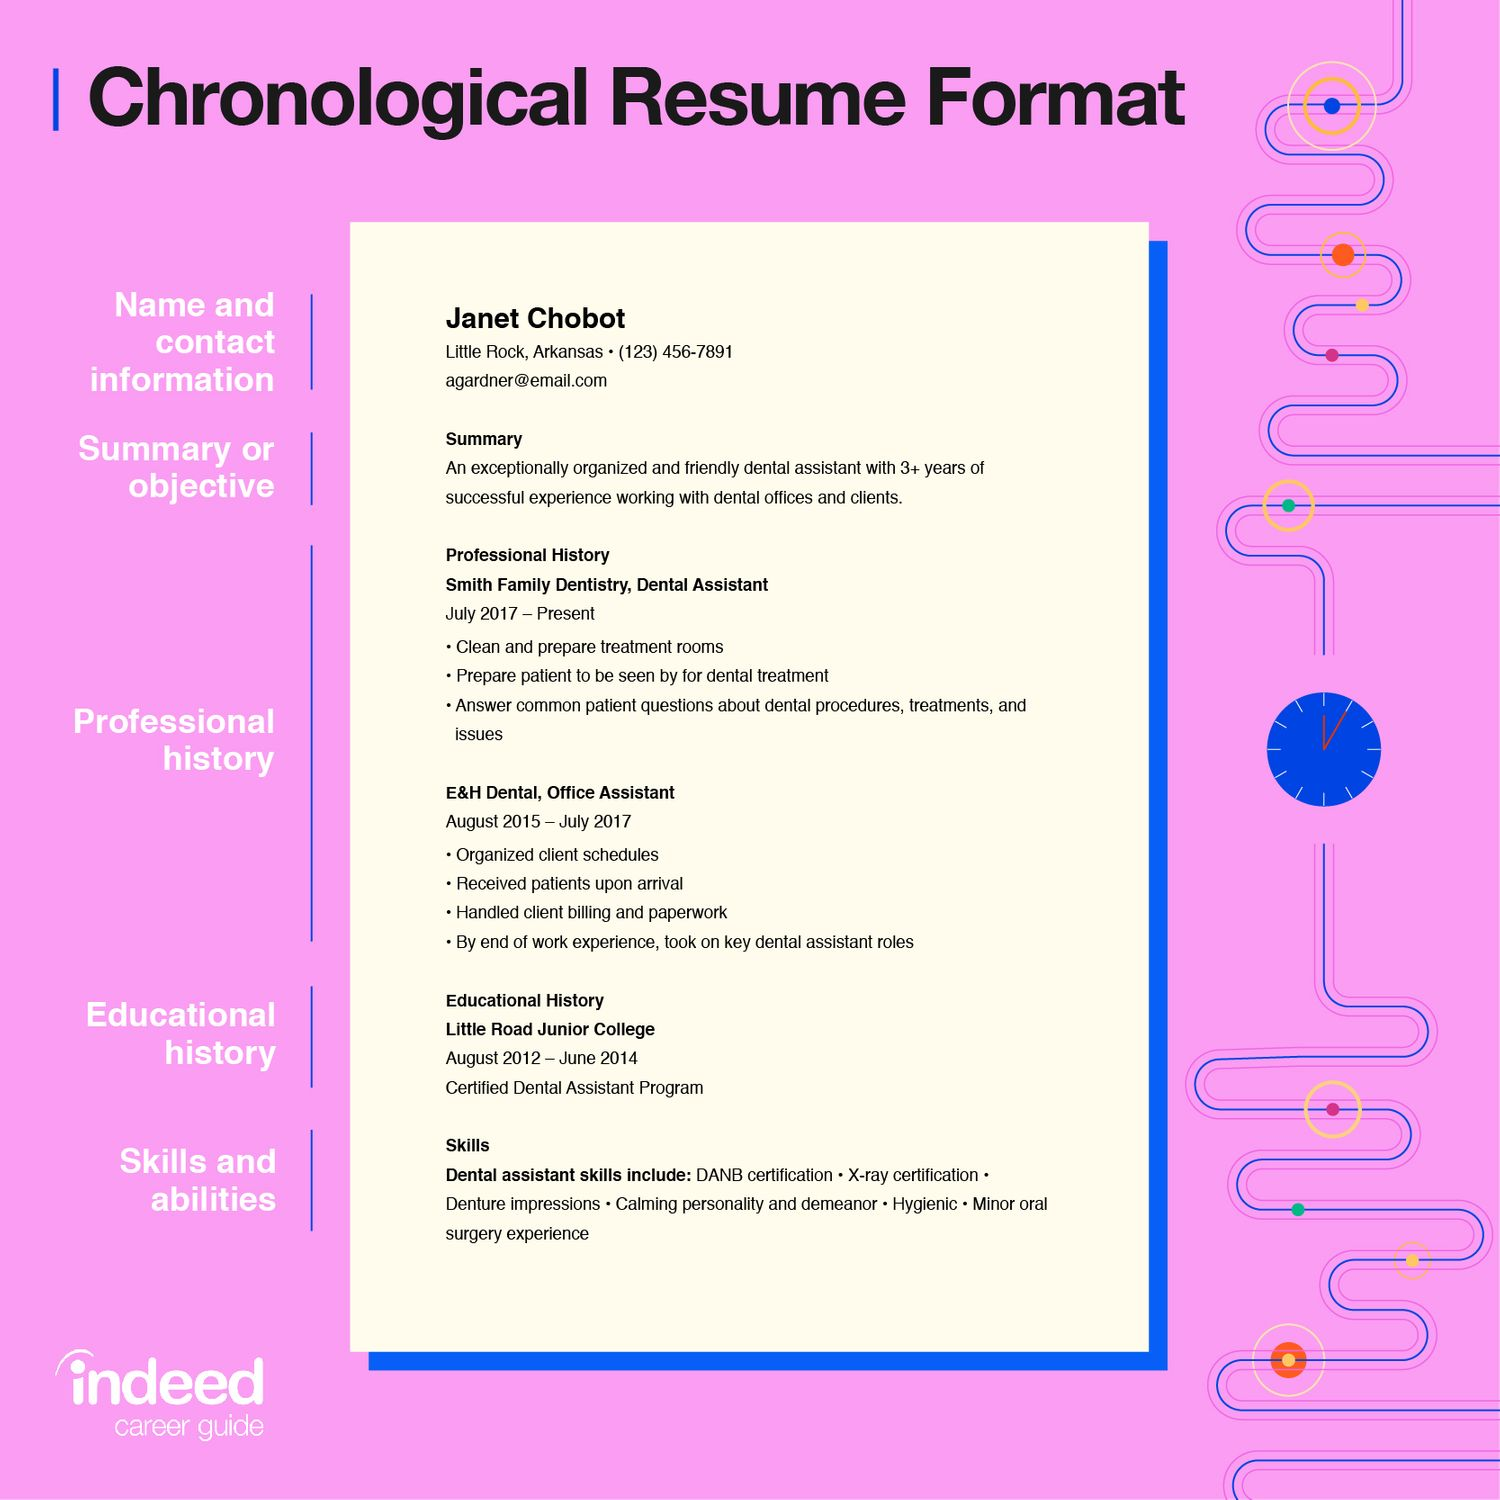 to include years of experience on your resume indeed title for experienced resized safety Resume Resume Title For Experienced